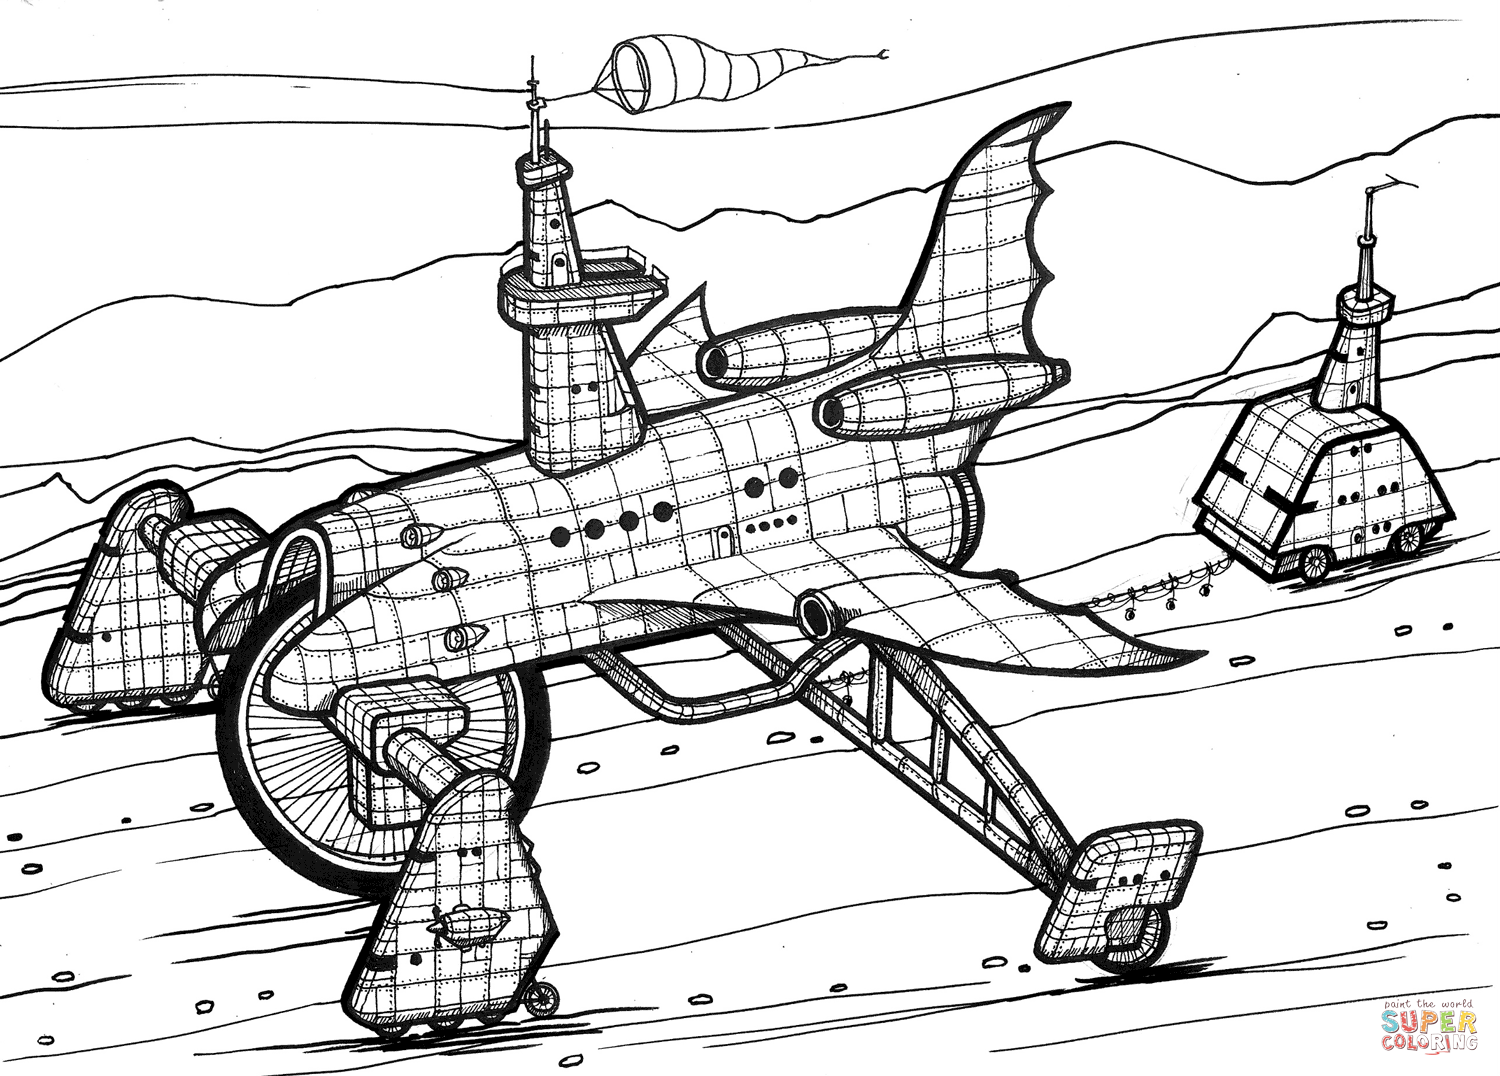 space shuttle coloring pages space shuttle coloring pages at getdrawings free download shuttle pages space coloring